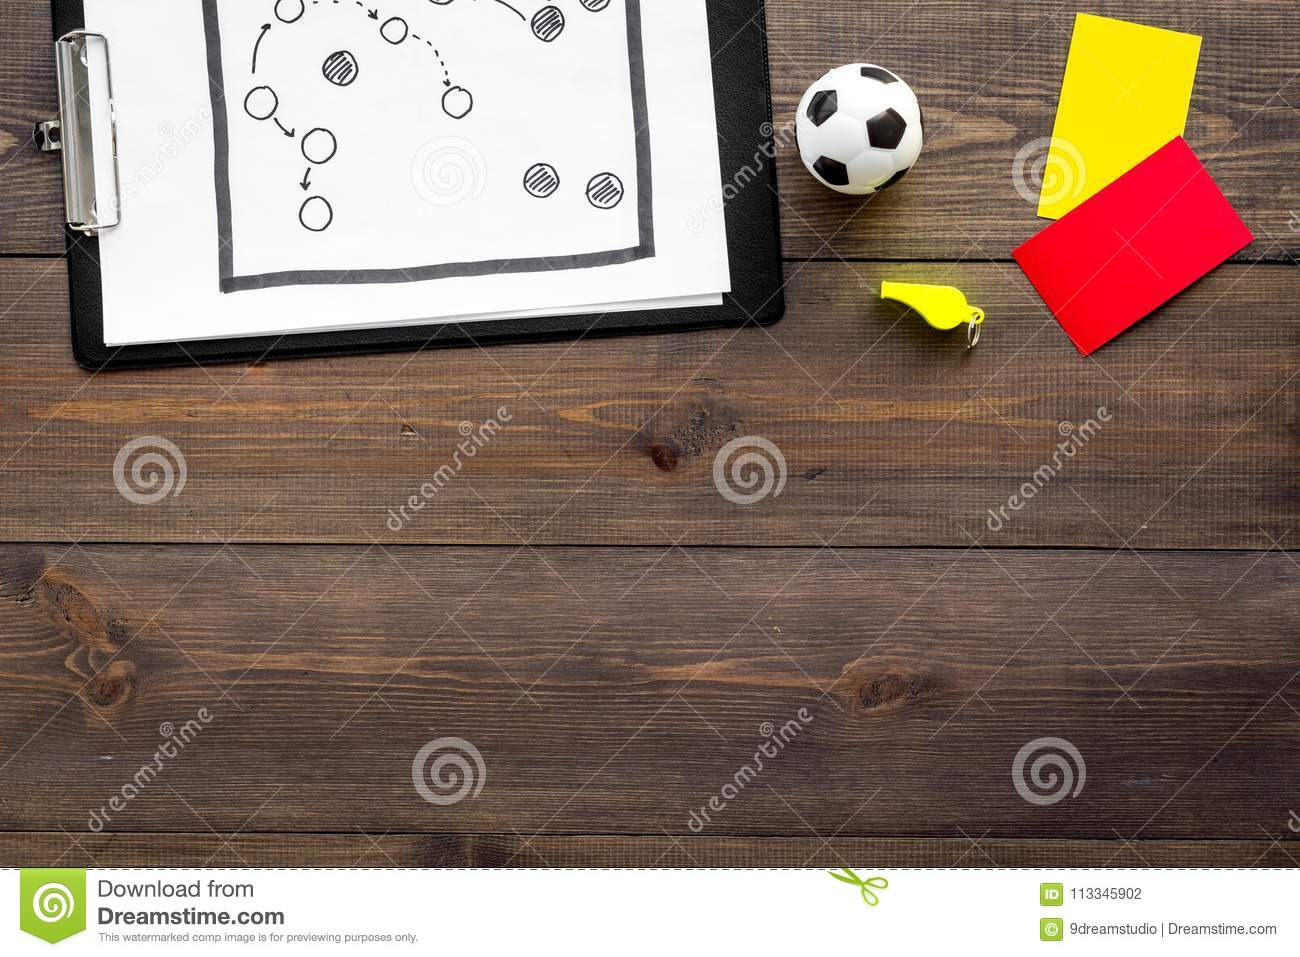 Soccer Referee Tactic Plan For Game Football Ball Red And Yellow Cards Whistle On Wooden Background Top View